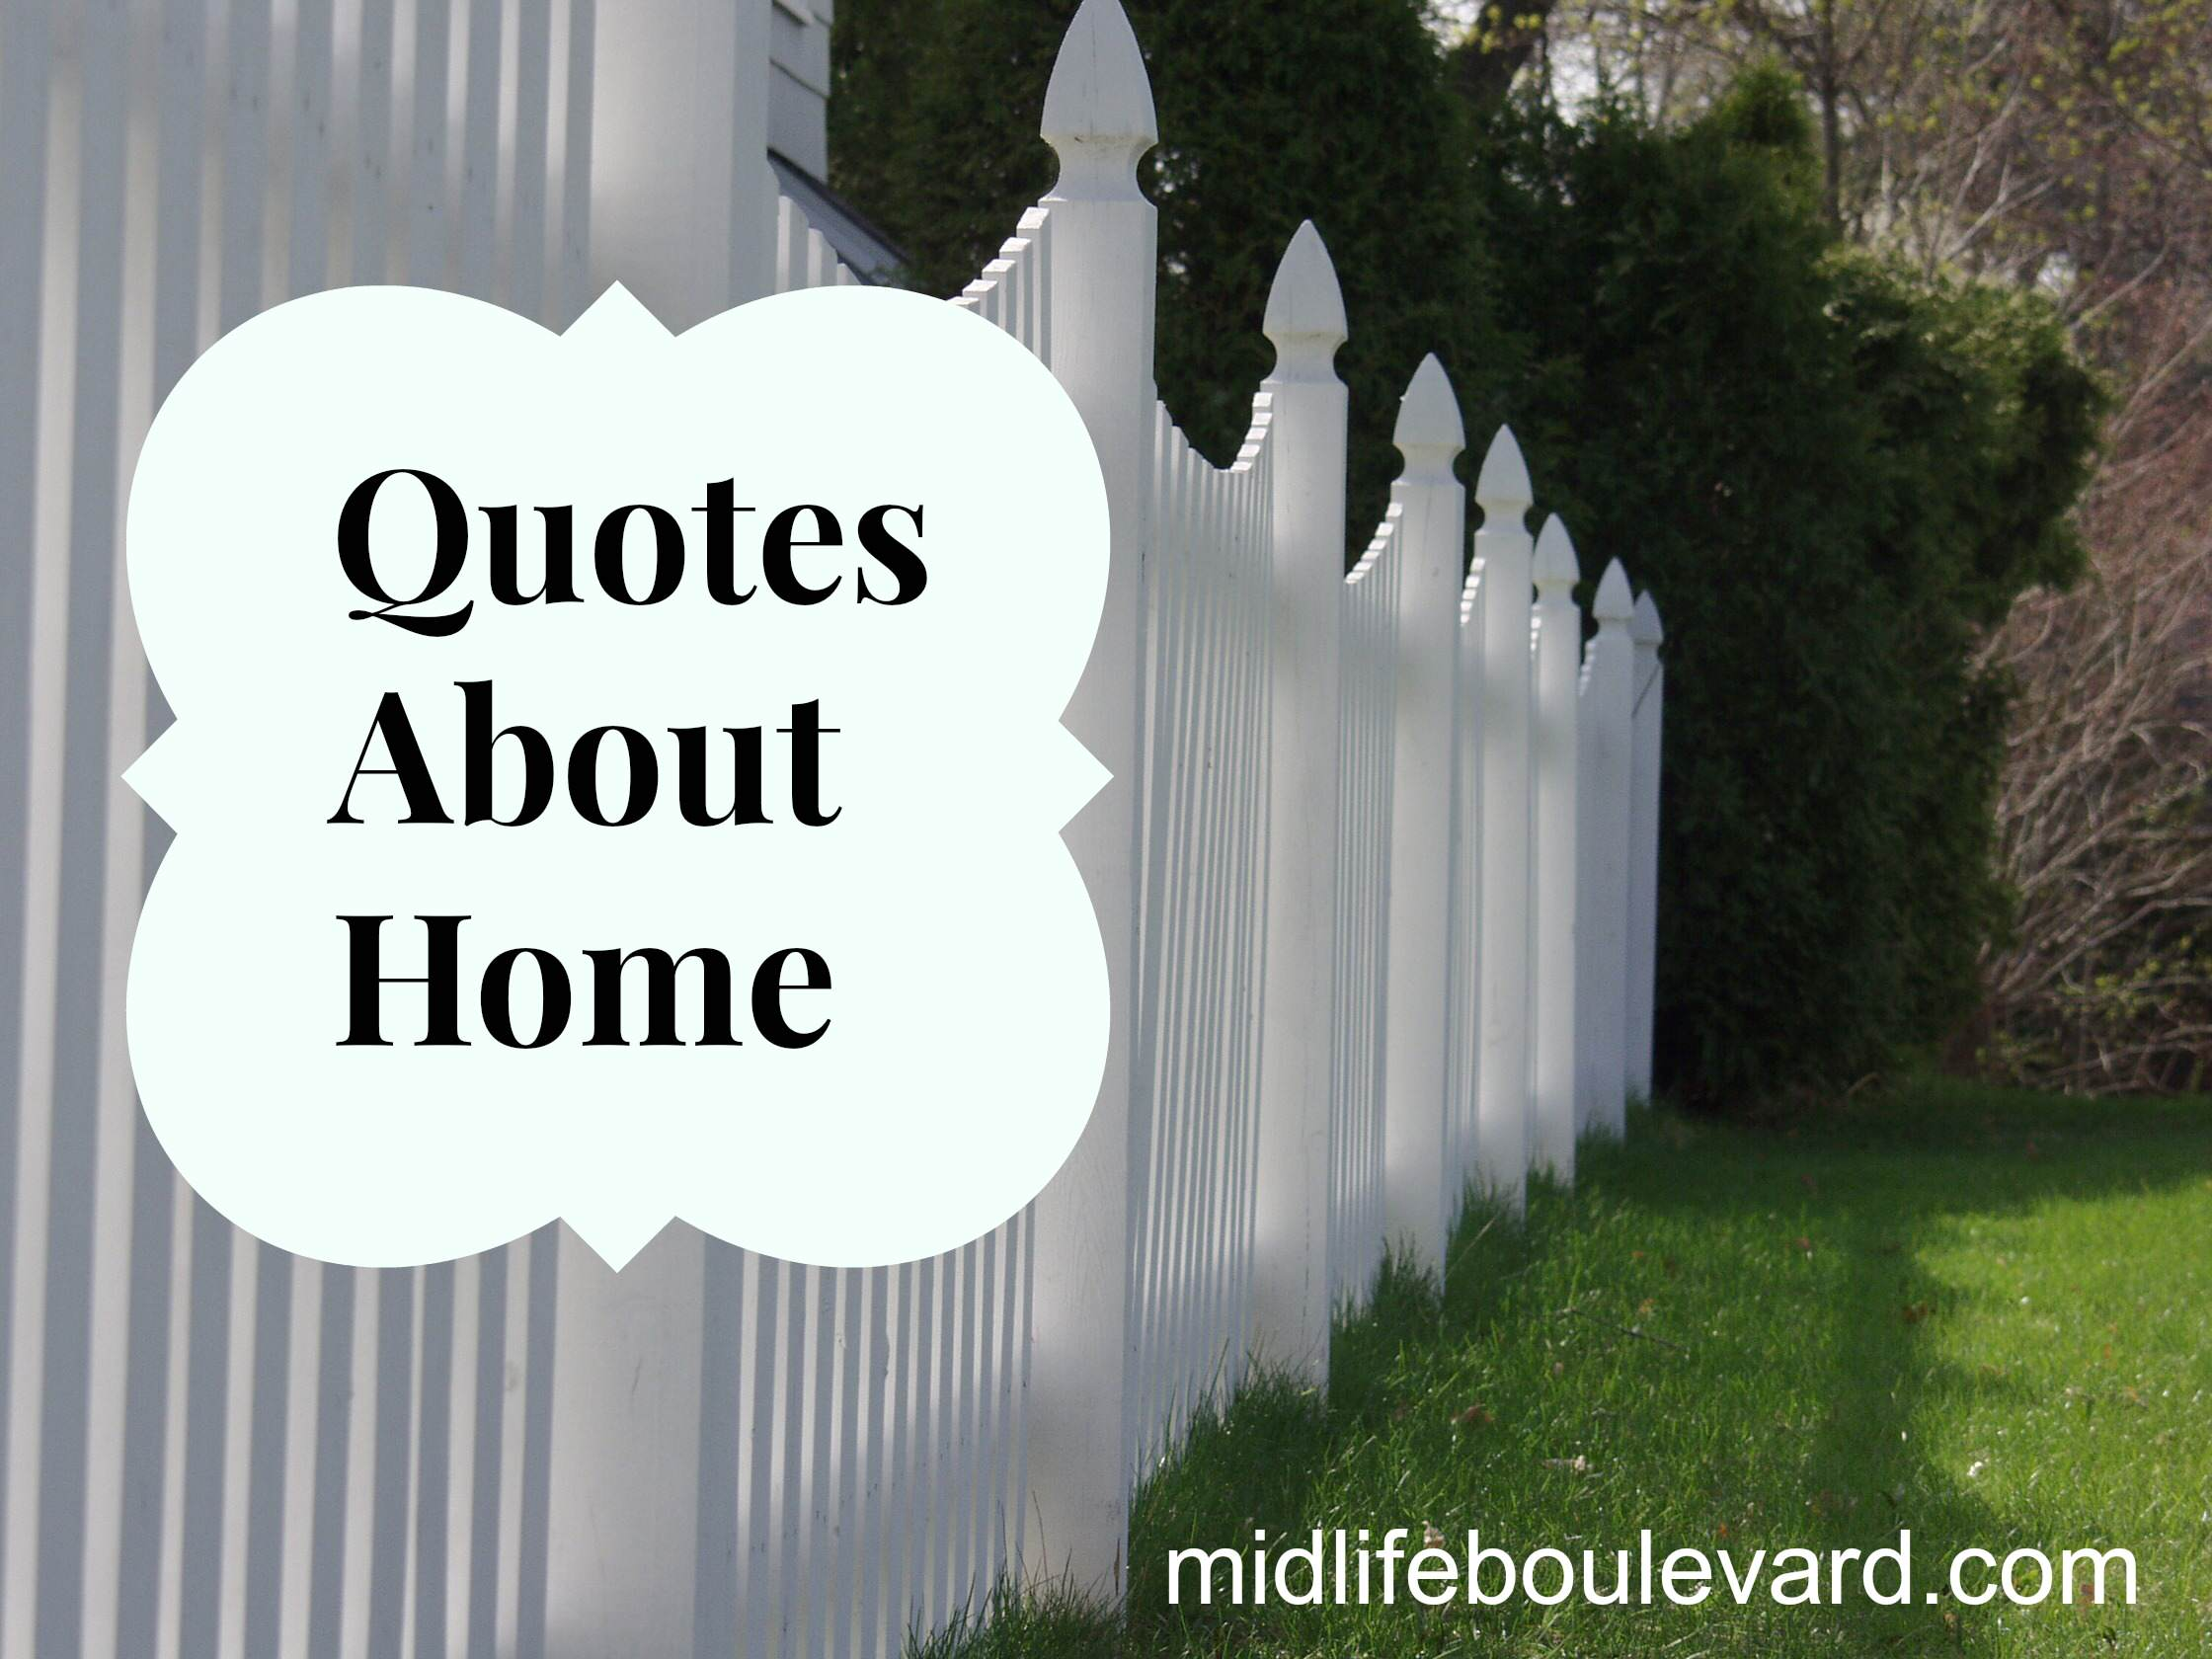 Quotes About Home - Midlife Boulevard